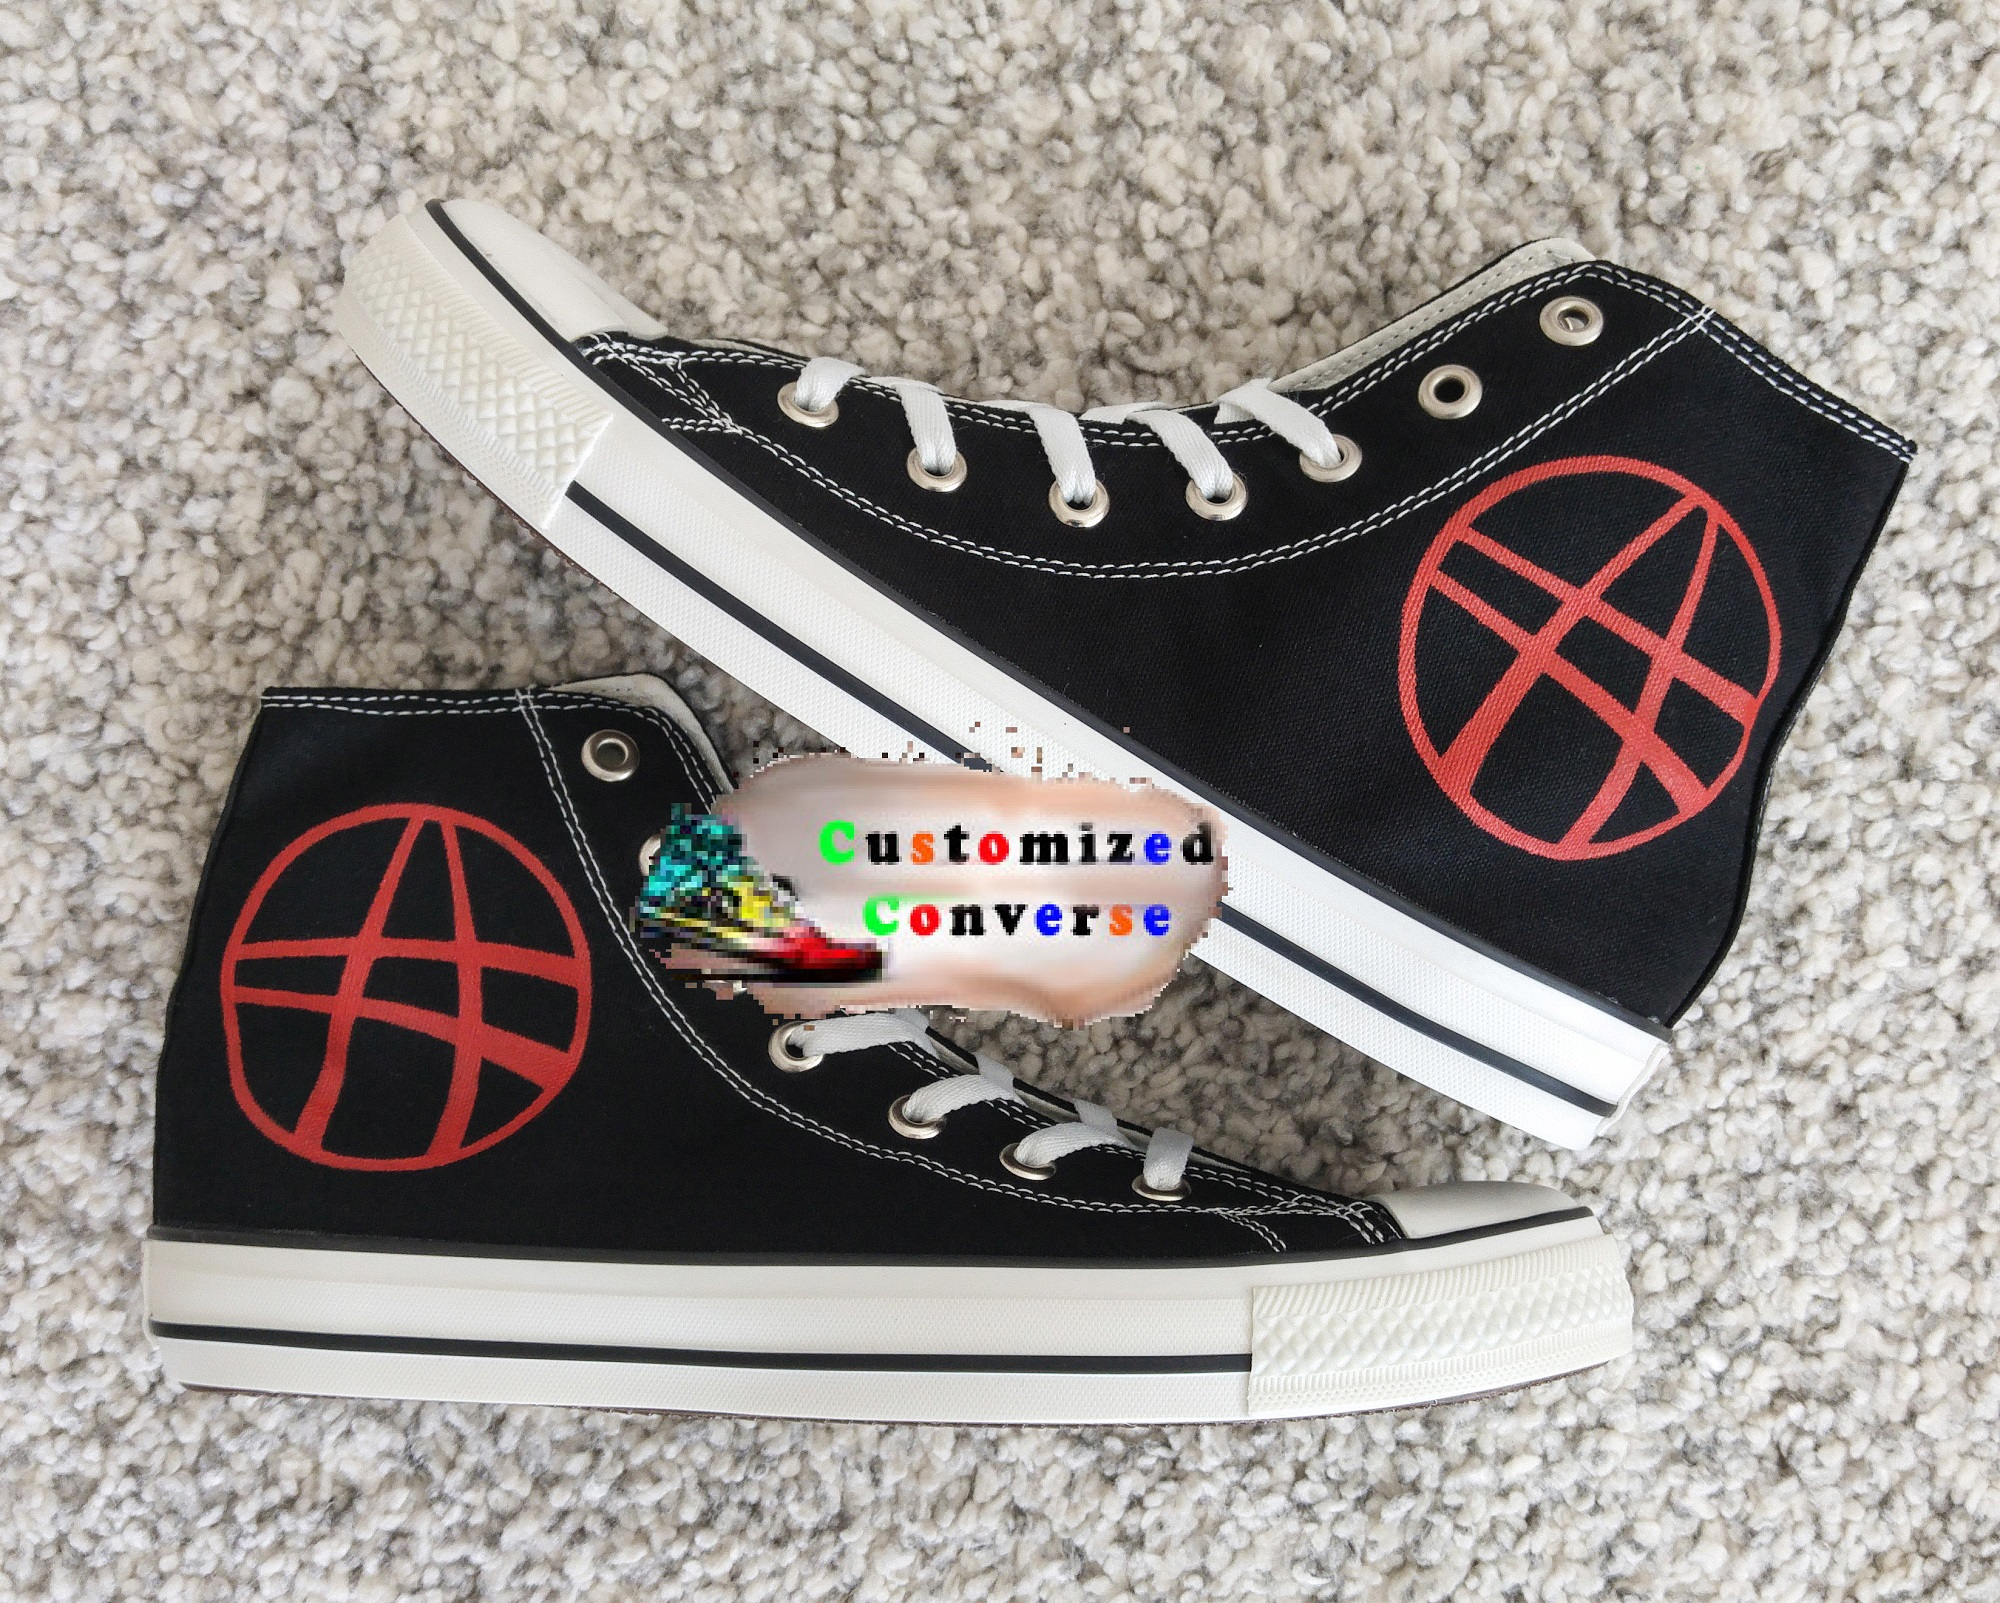 21a8f4b03f75 Doctor Strange Shoes - converse shoes - custom converse - customized  converse